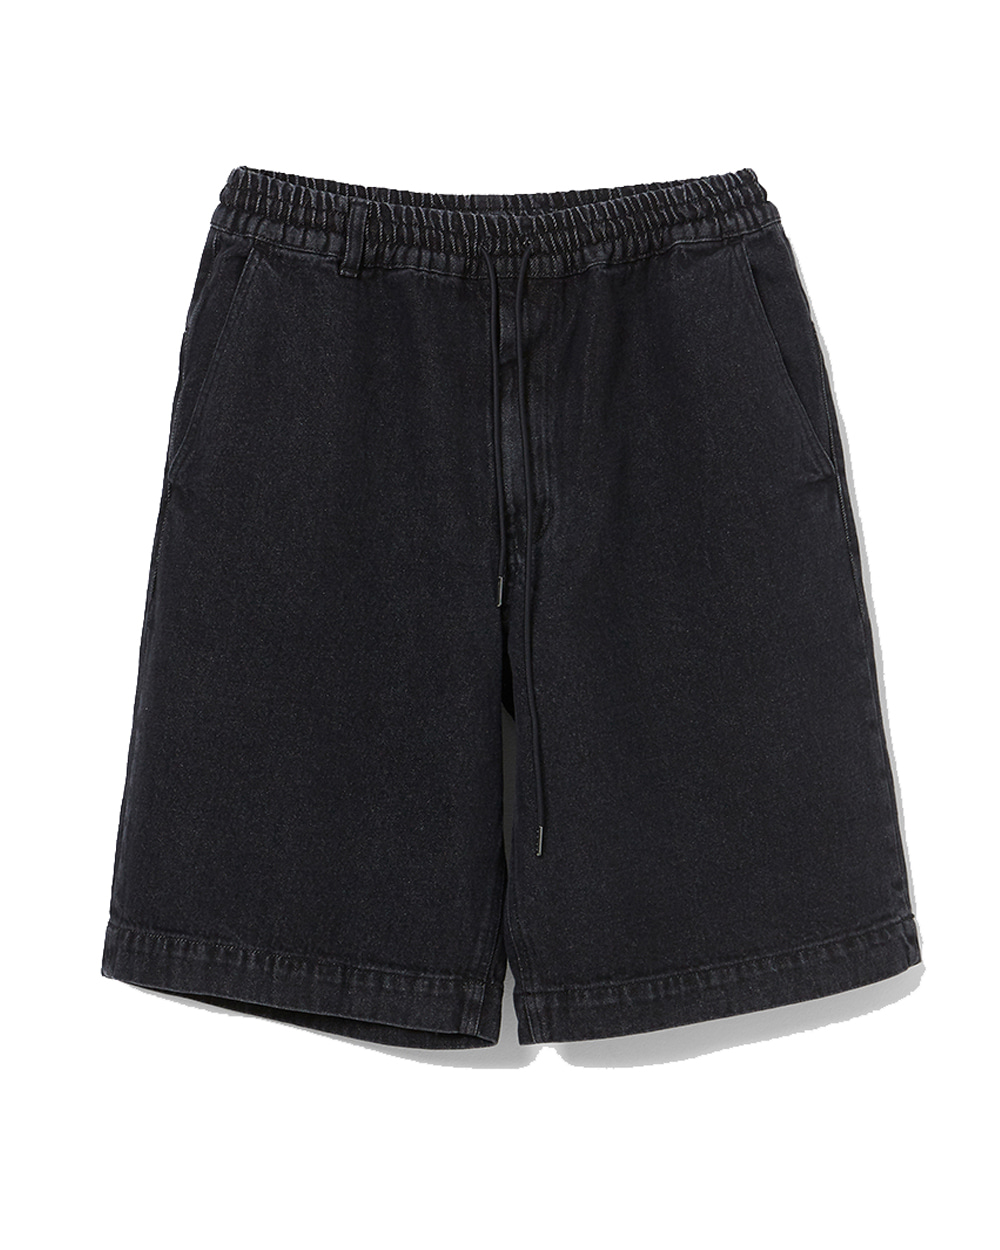 이니그마 Wide Denim Shorts (Washed Black)